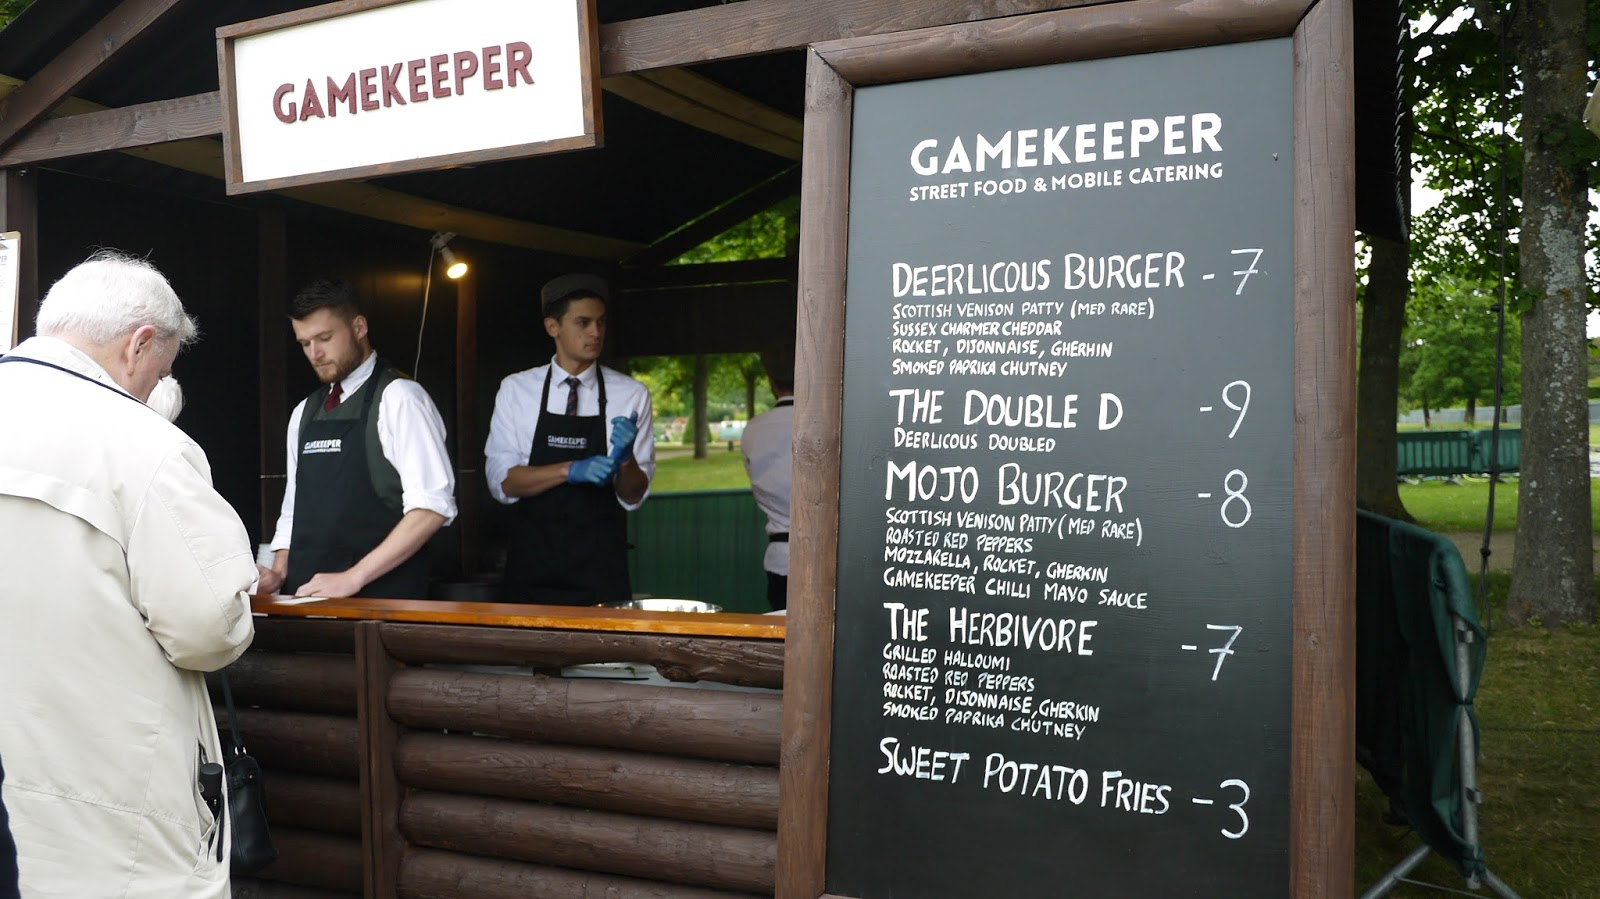 Gamekeeper burgers at Hampton Court Palace Festival